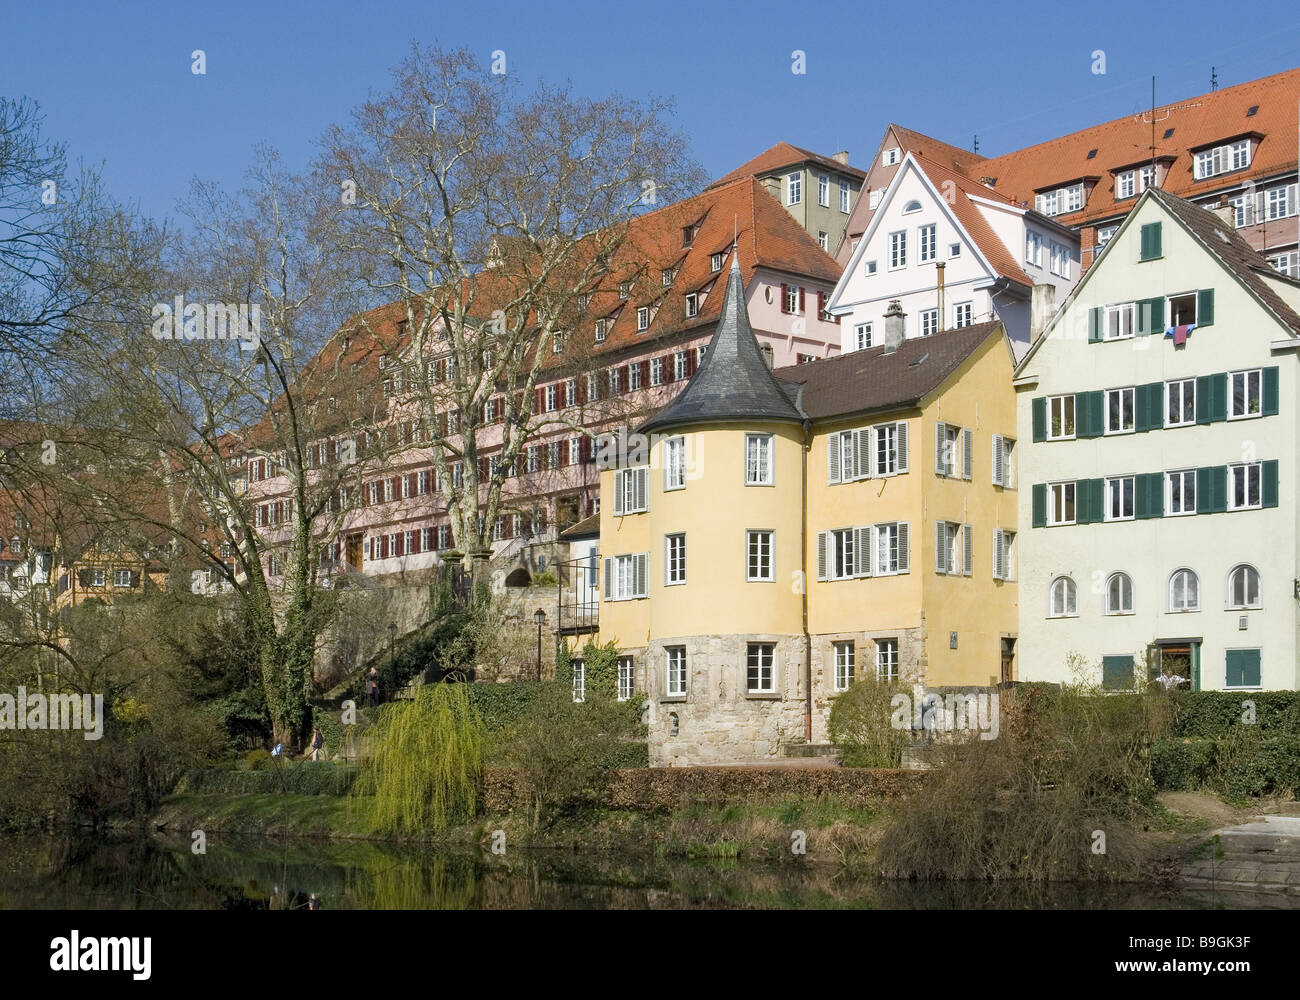 H lderlin photos h lderlin images alamy for Baden baden allemagne maison close